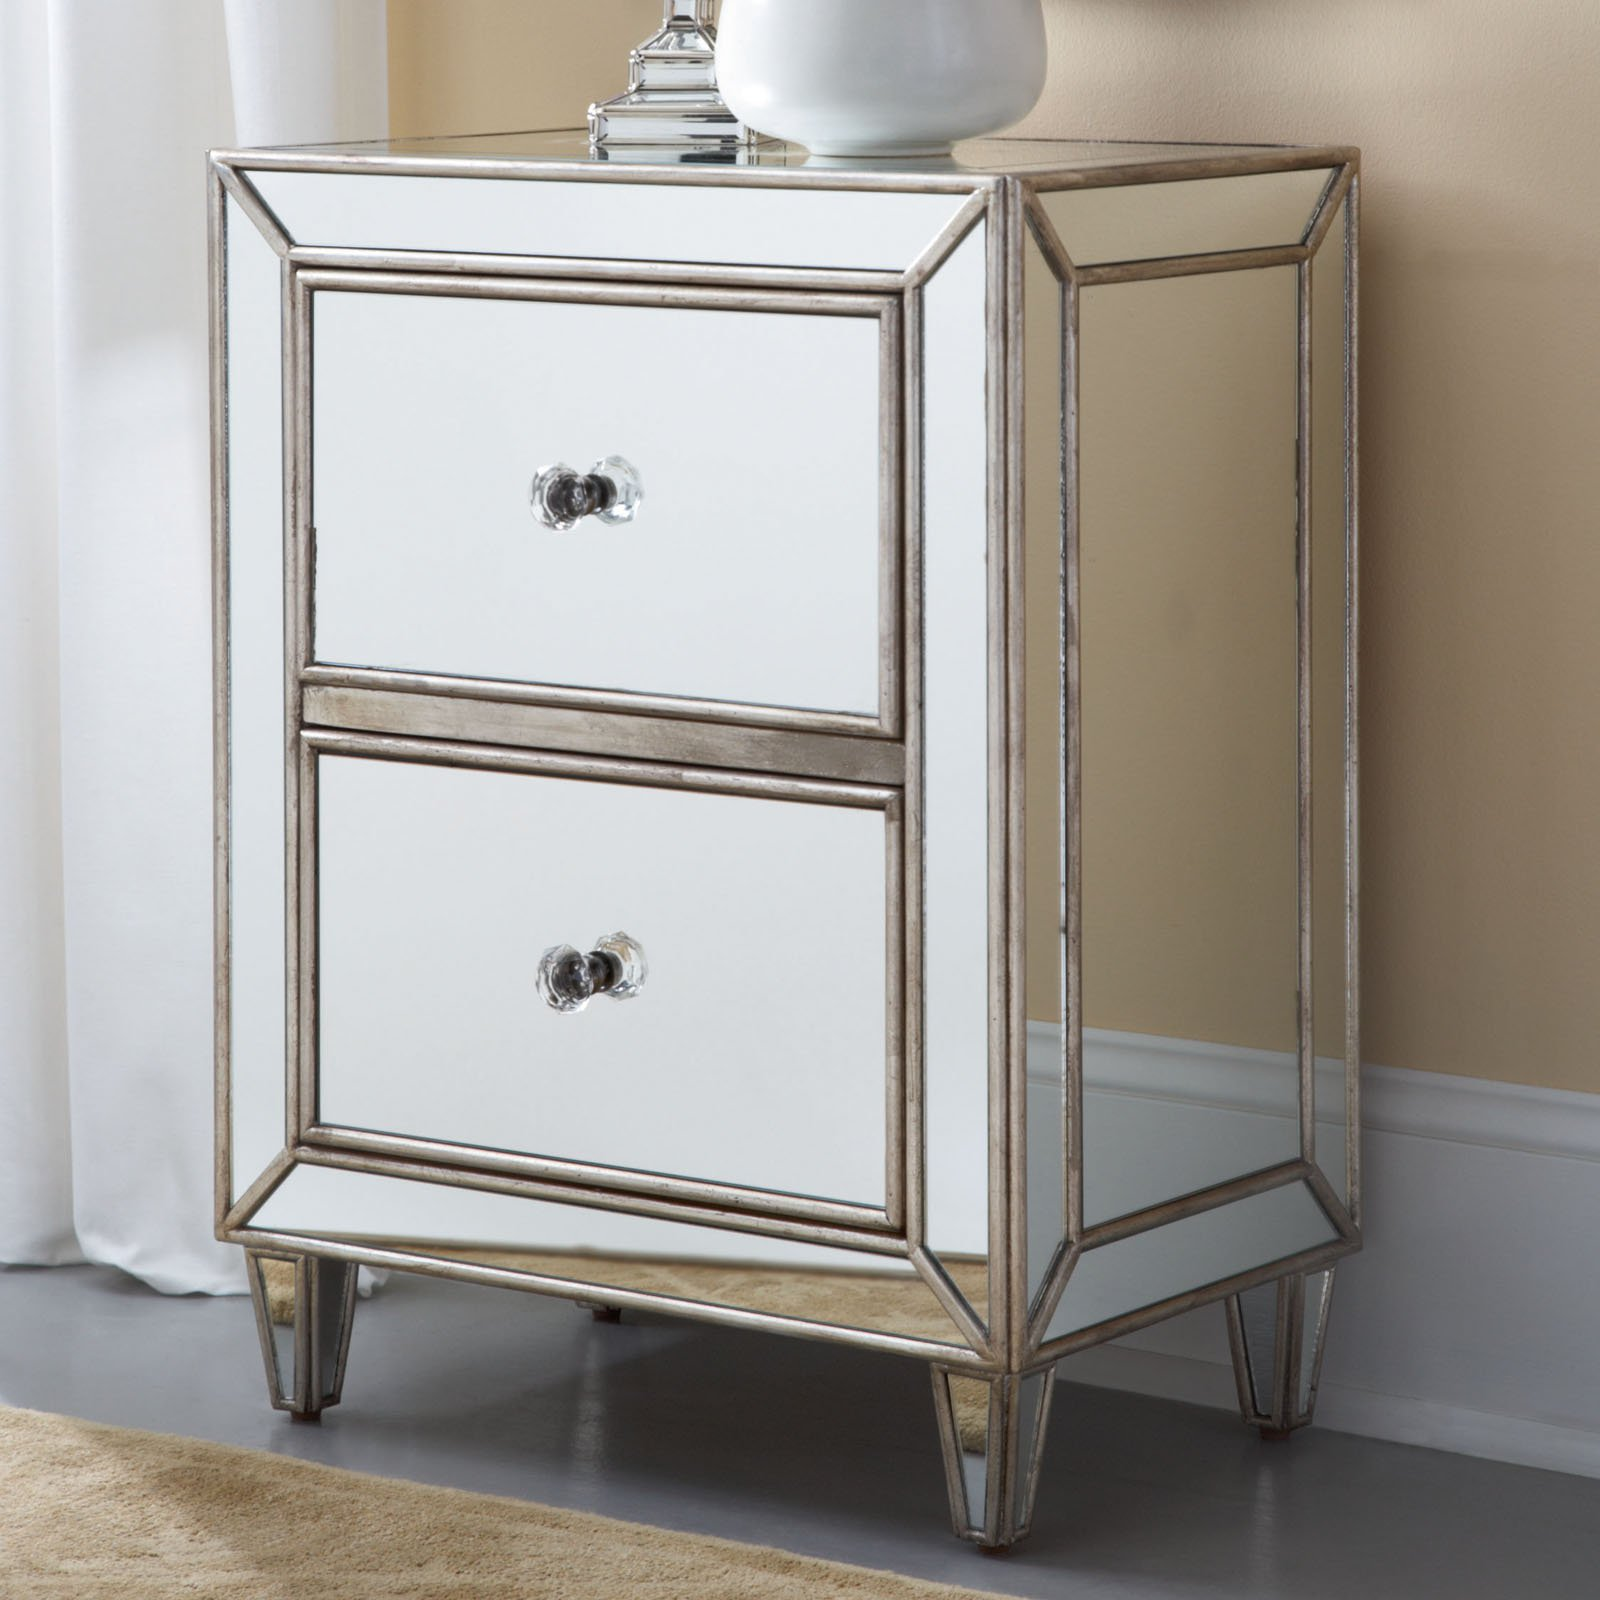 Picture of: Mirrored Dresser Cheap